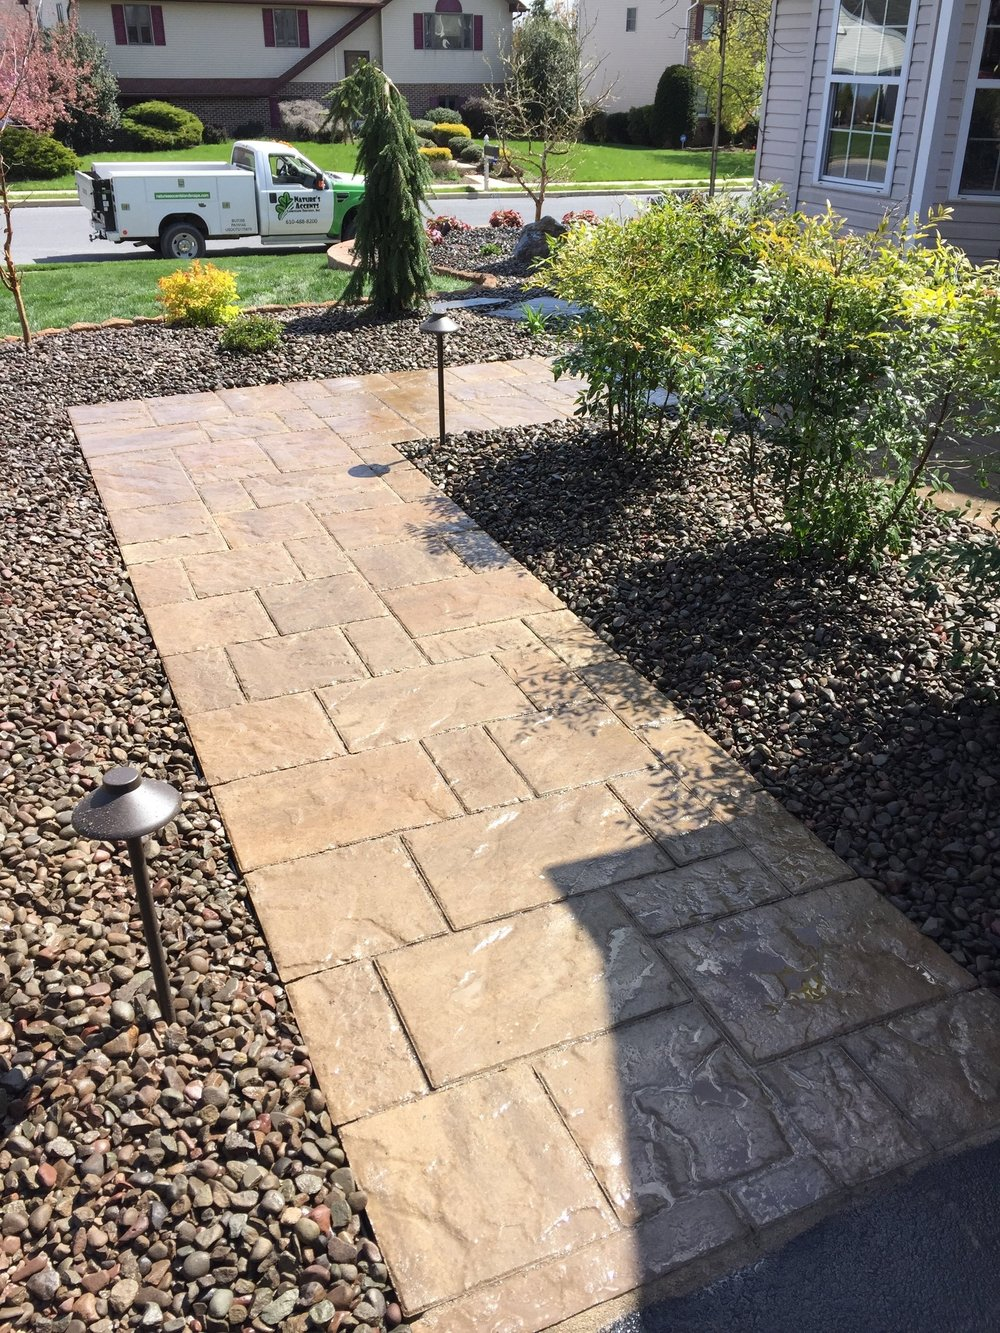 Professional landscape maintenance company in Schuylkill County, PA